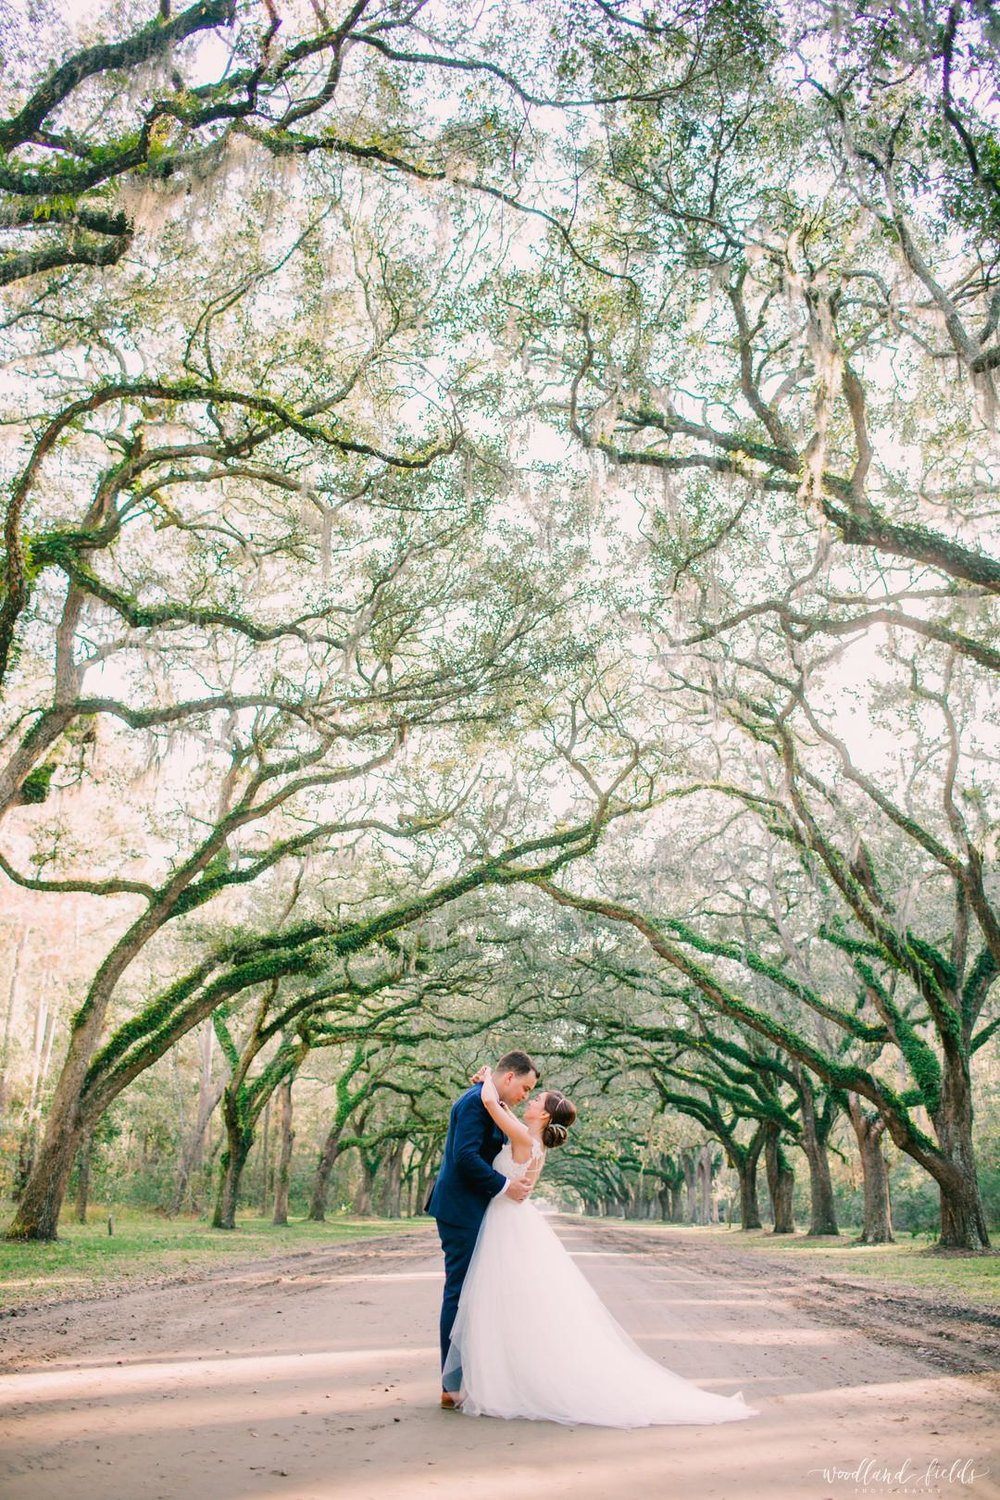 savannah-bridal-shop-ivory-and-beau-bridal-boutique-beth-and-jesse-woodland-fields-photography-georgia-railroad-museum-wedding-7.jpg